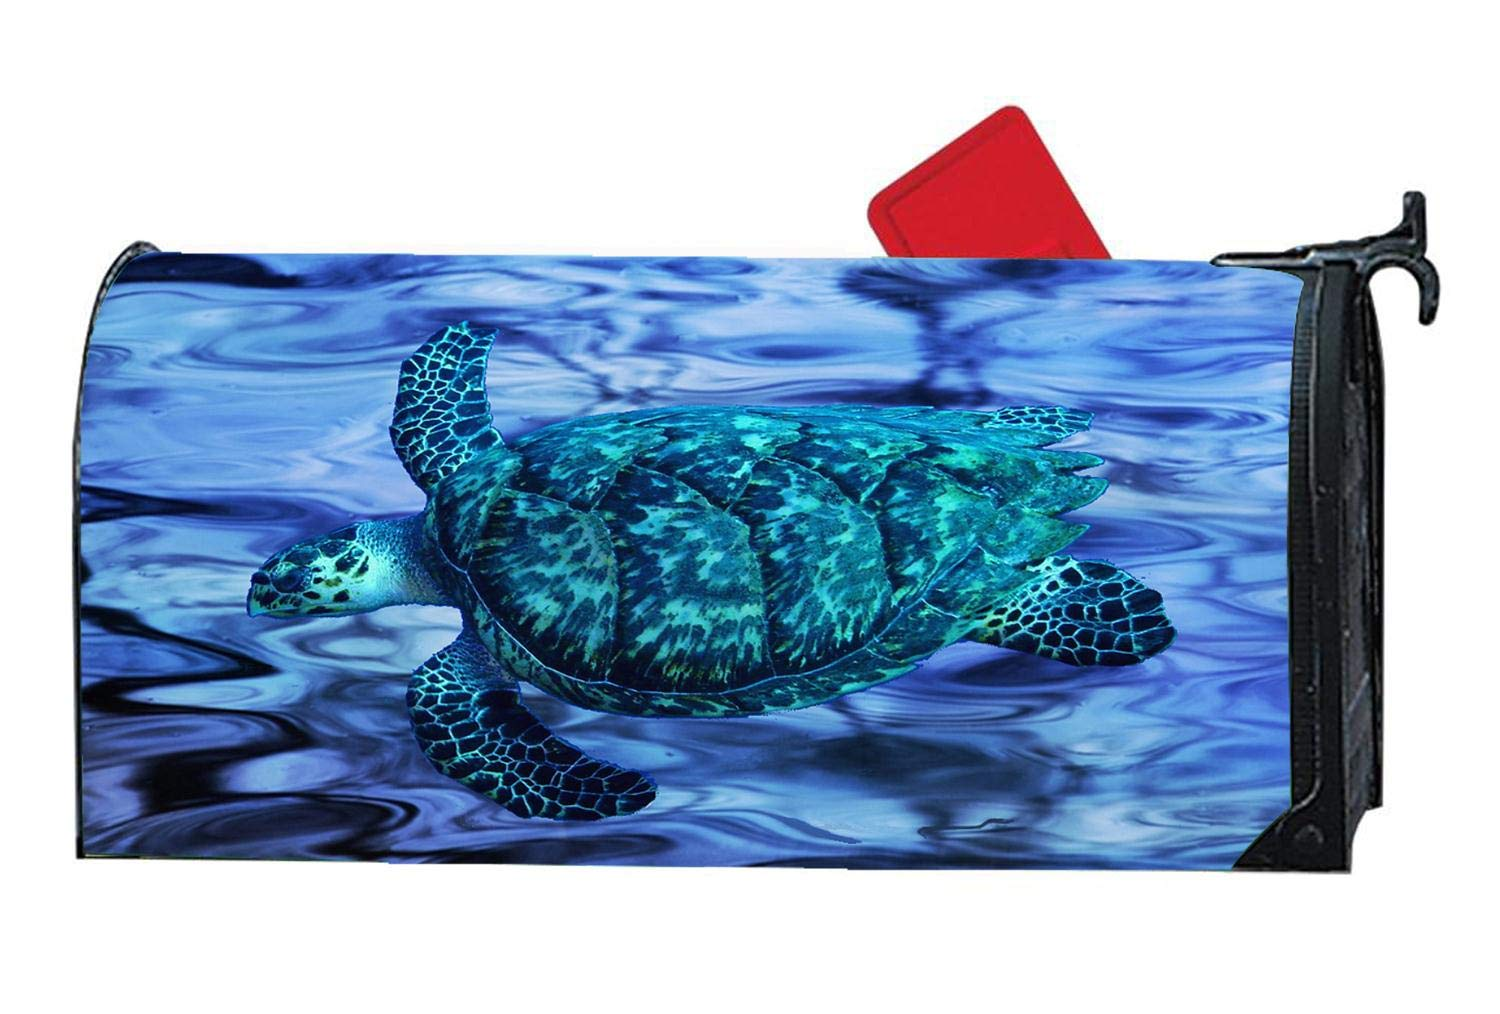 Popular Mailbox Cover Magnetic, Personalized Turtle MailWrap Mailbox Makeover Cover - Vinyl with Full Magnet on Backside - Cosmic Blue Turtle Abstract